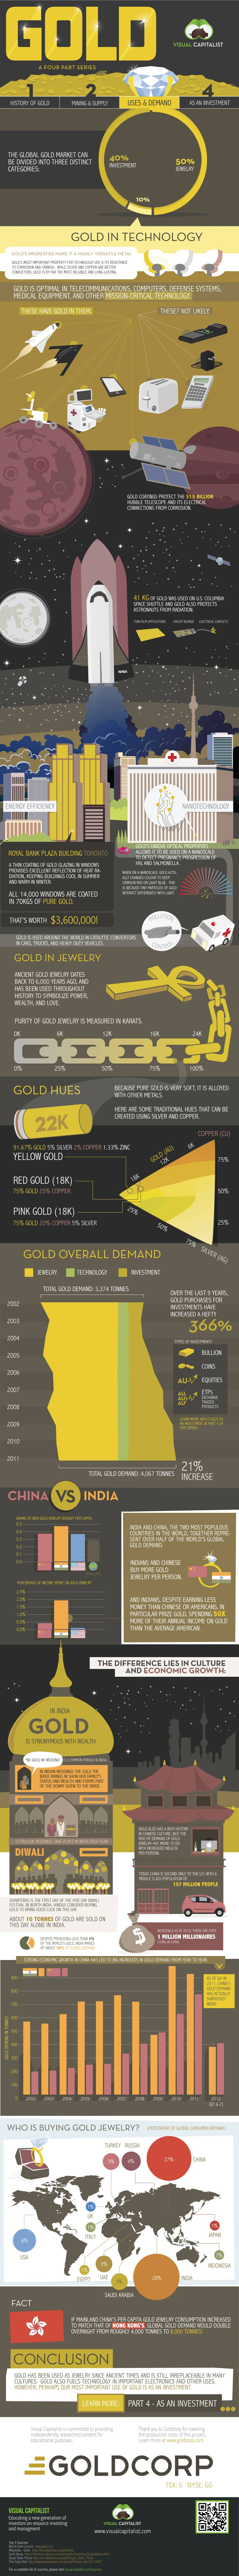 Infographics on uses and demand of gold esp. in jewellery